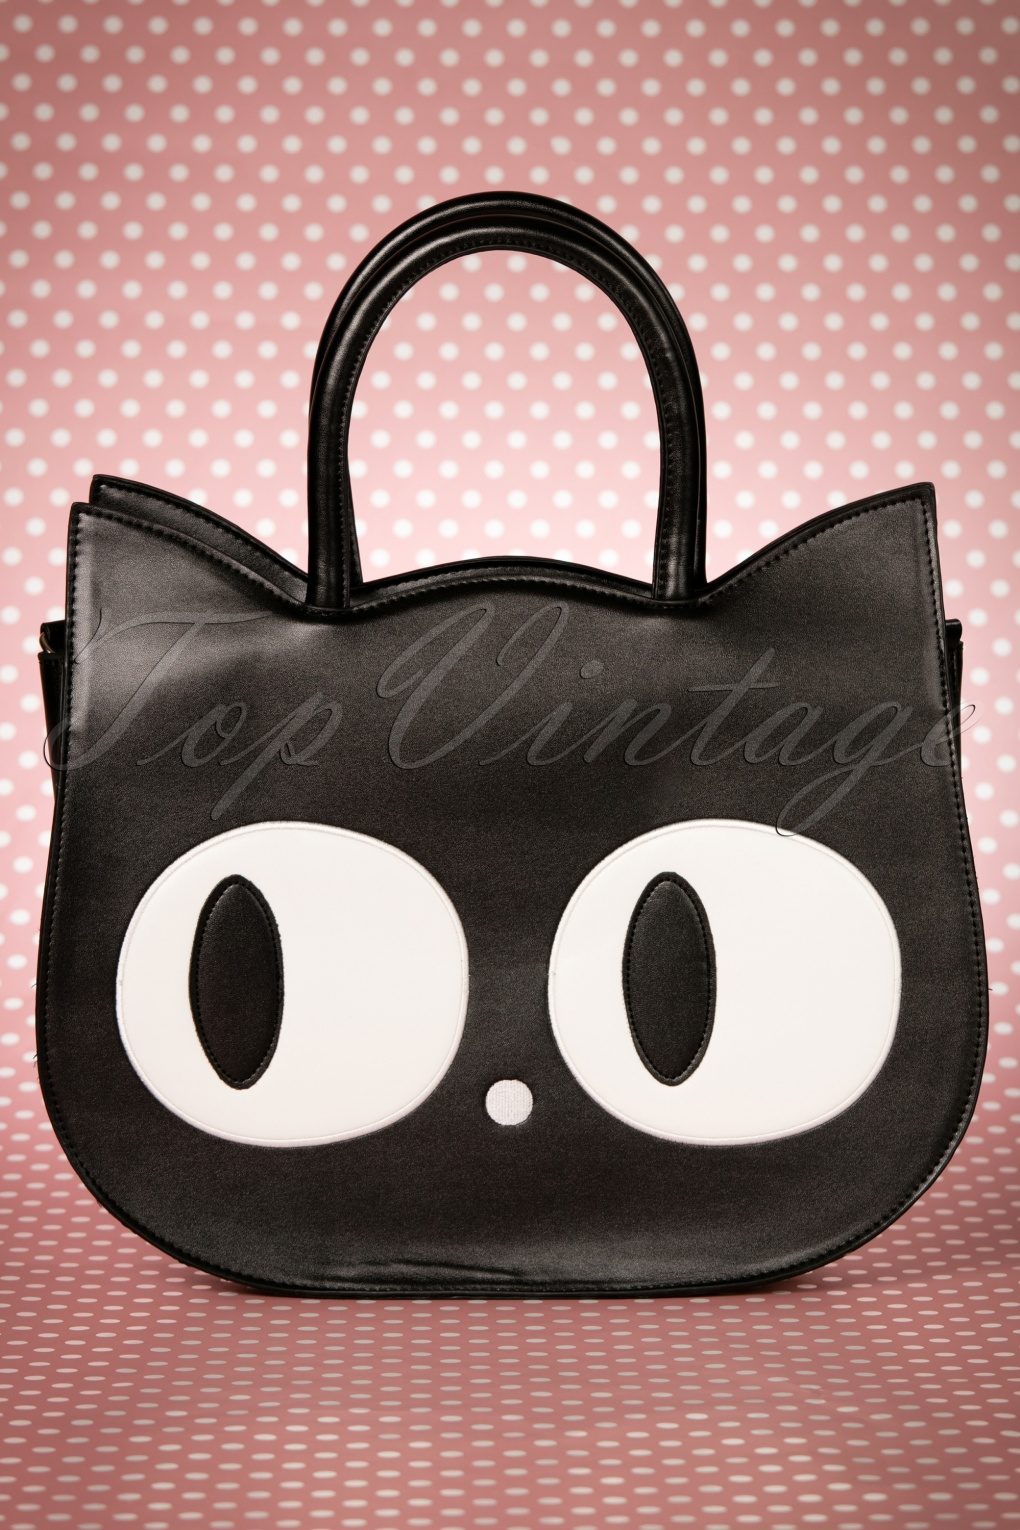 Retro Handbags, Purses, Wallets, Bags 60s Lizzy The Big Eyed Cat Bag in Black £29.68 AT vintagedancer.com